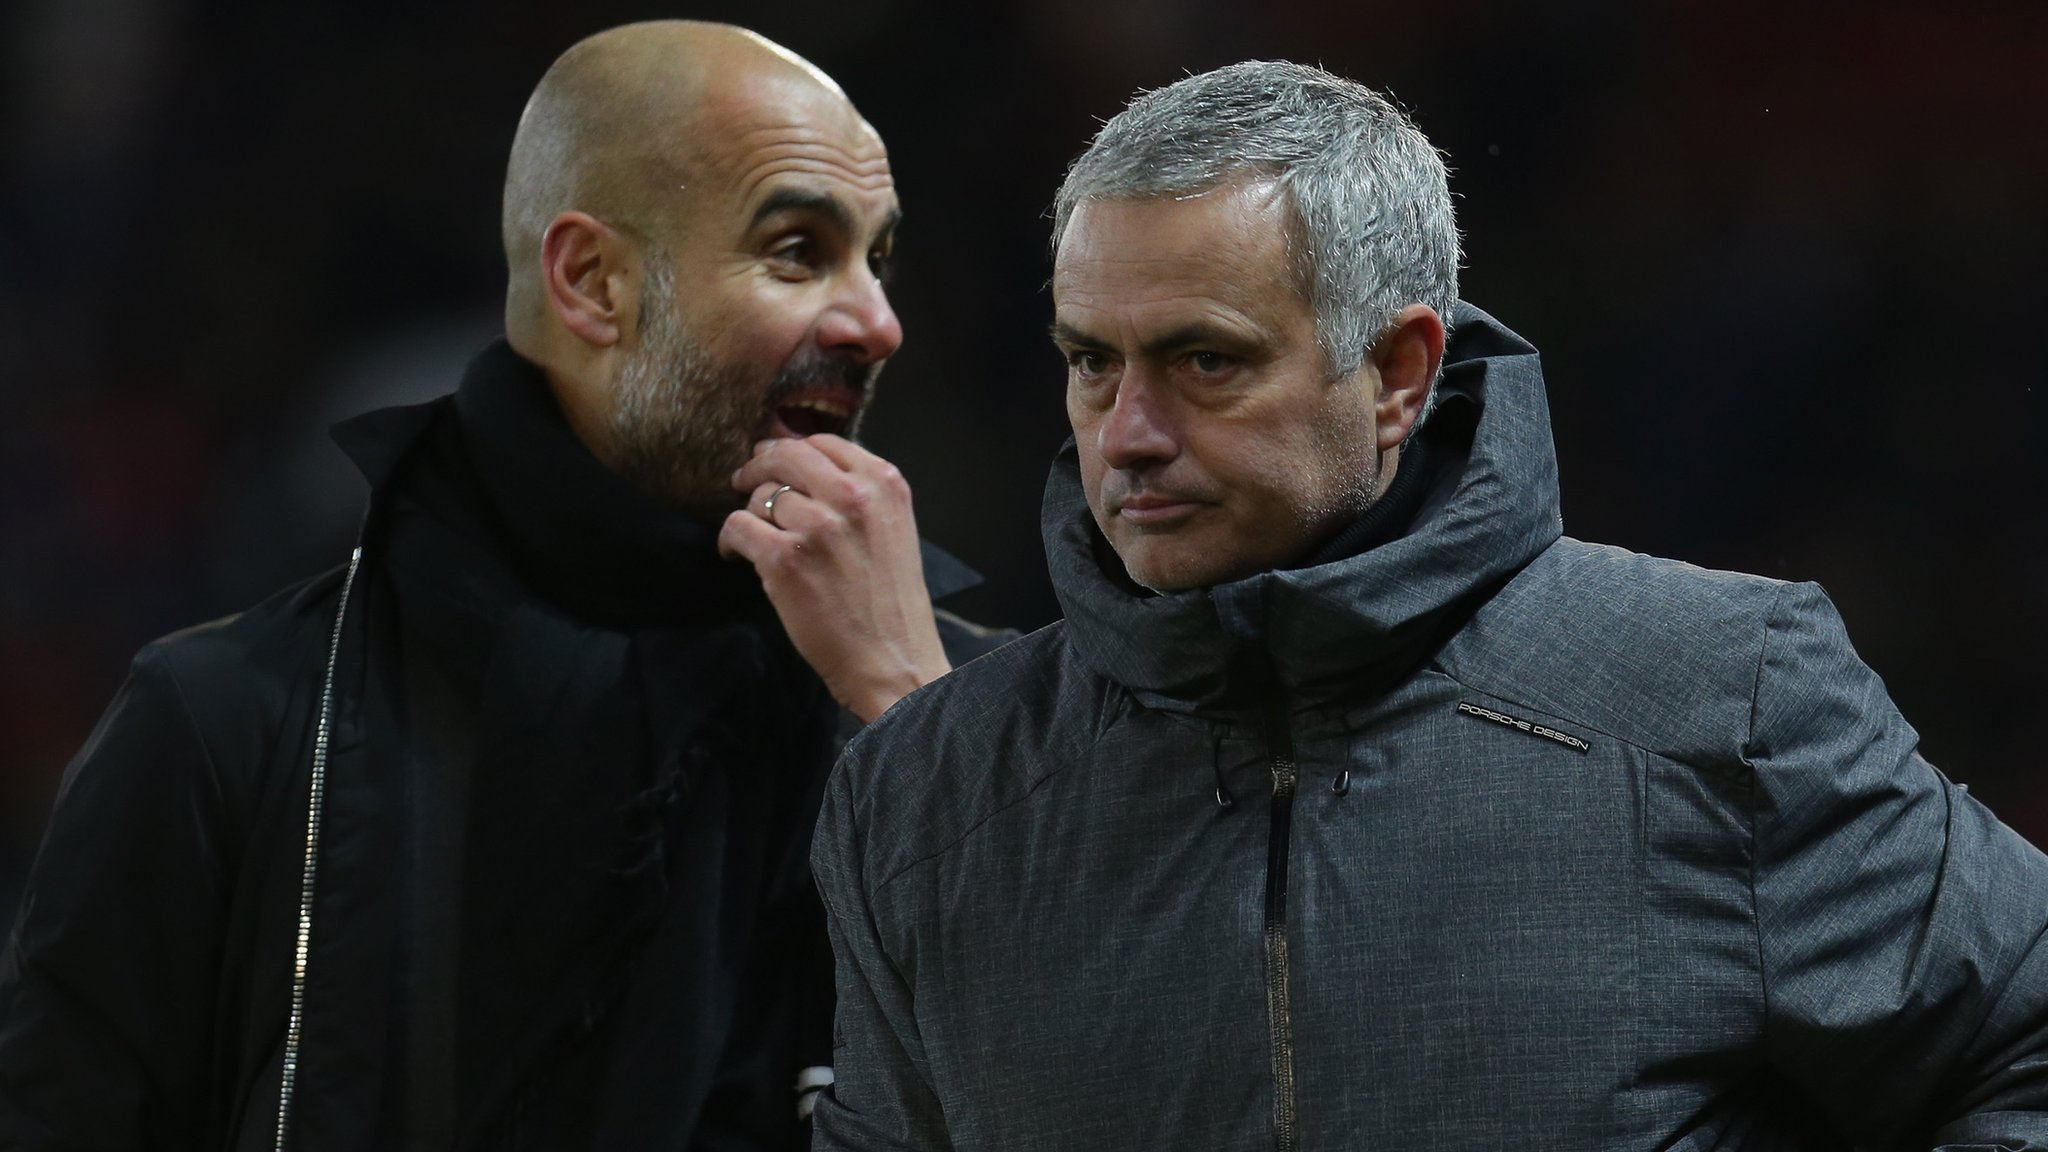 'He was regarded as a genius - now rattled Mourinho looks outdated'